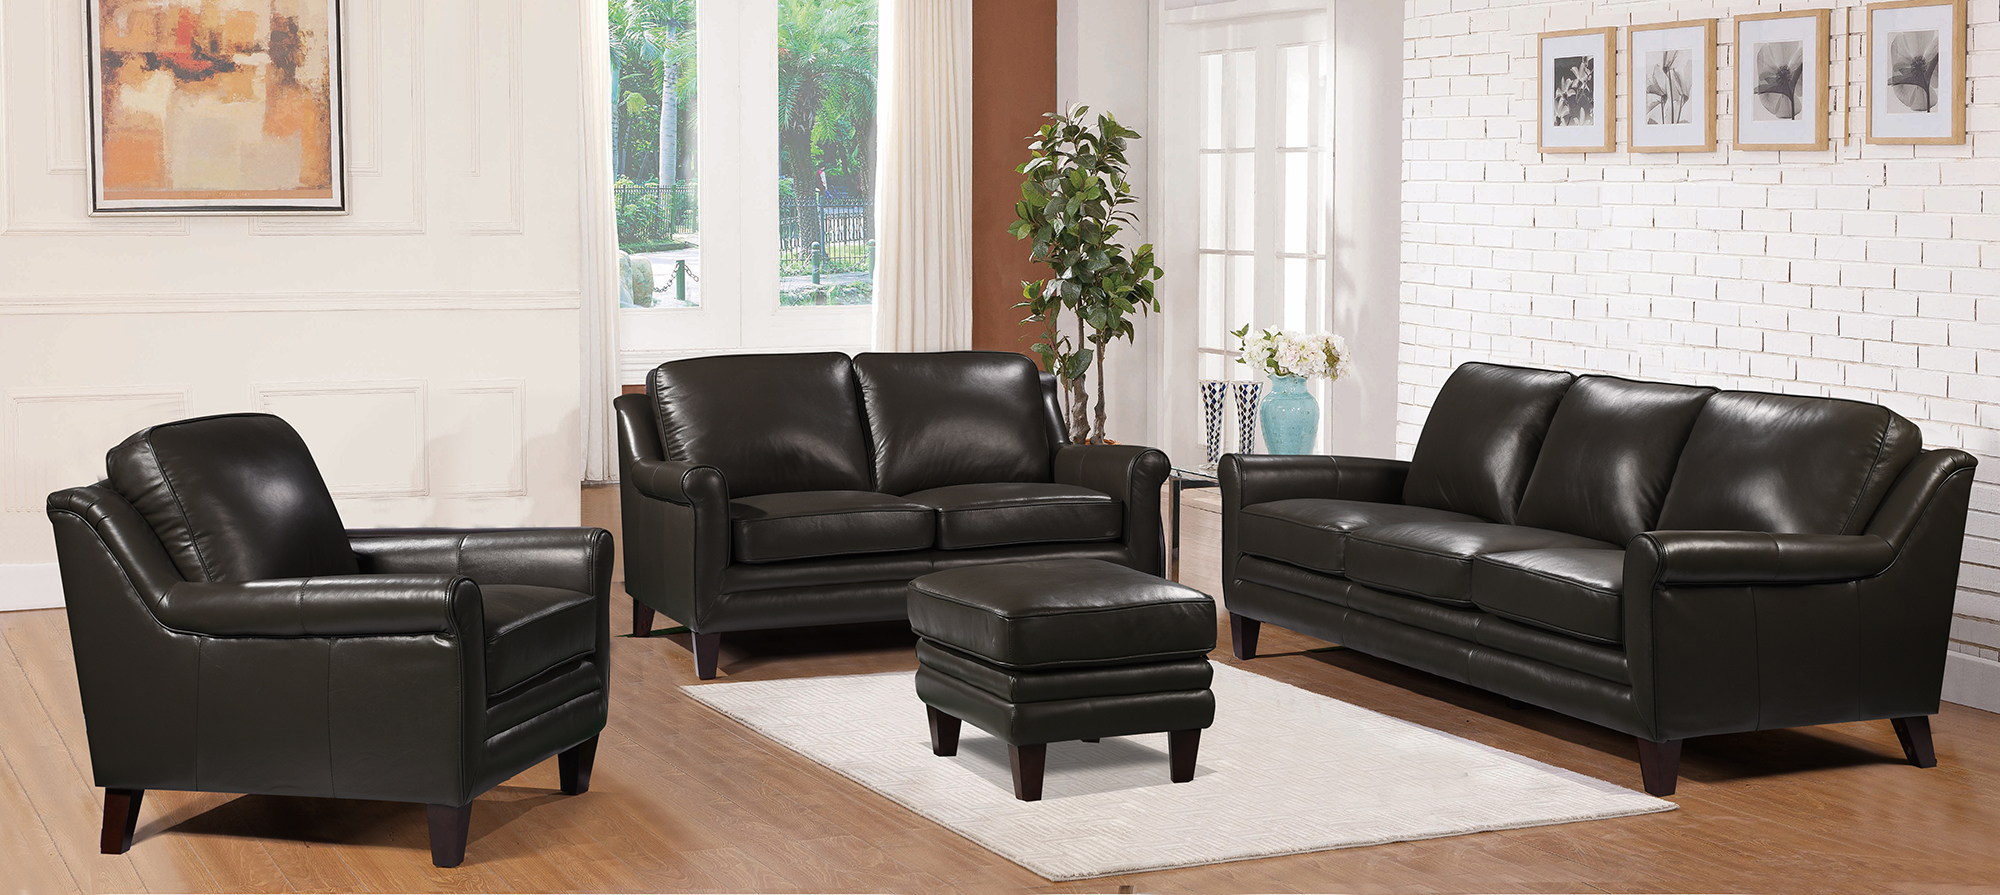 grandover leather sofa